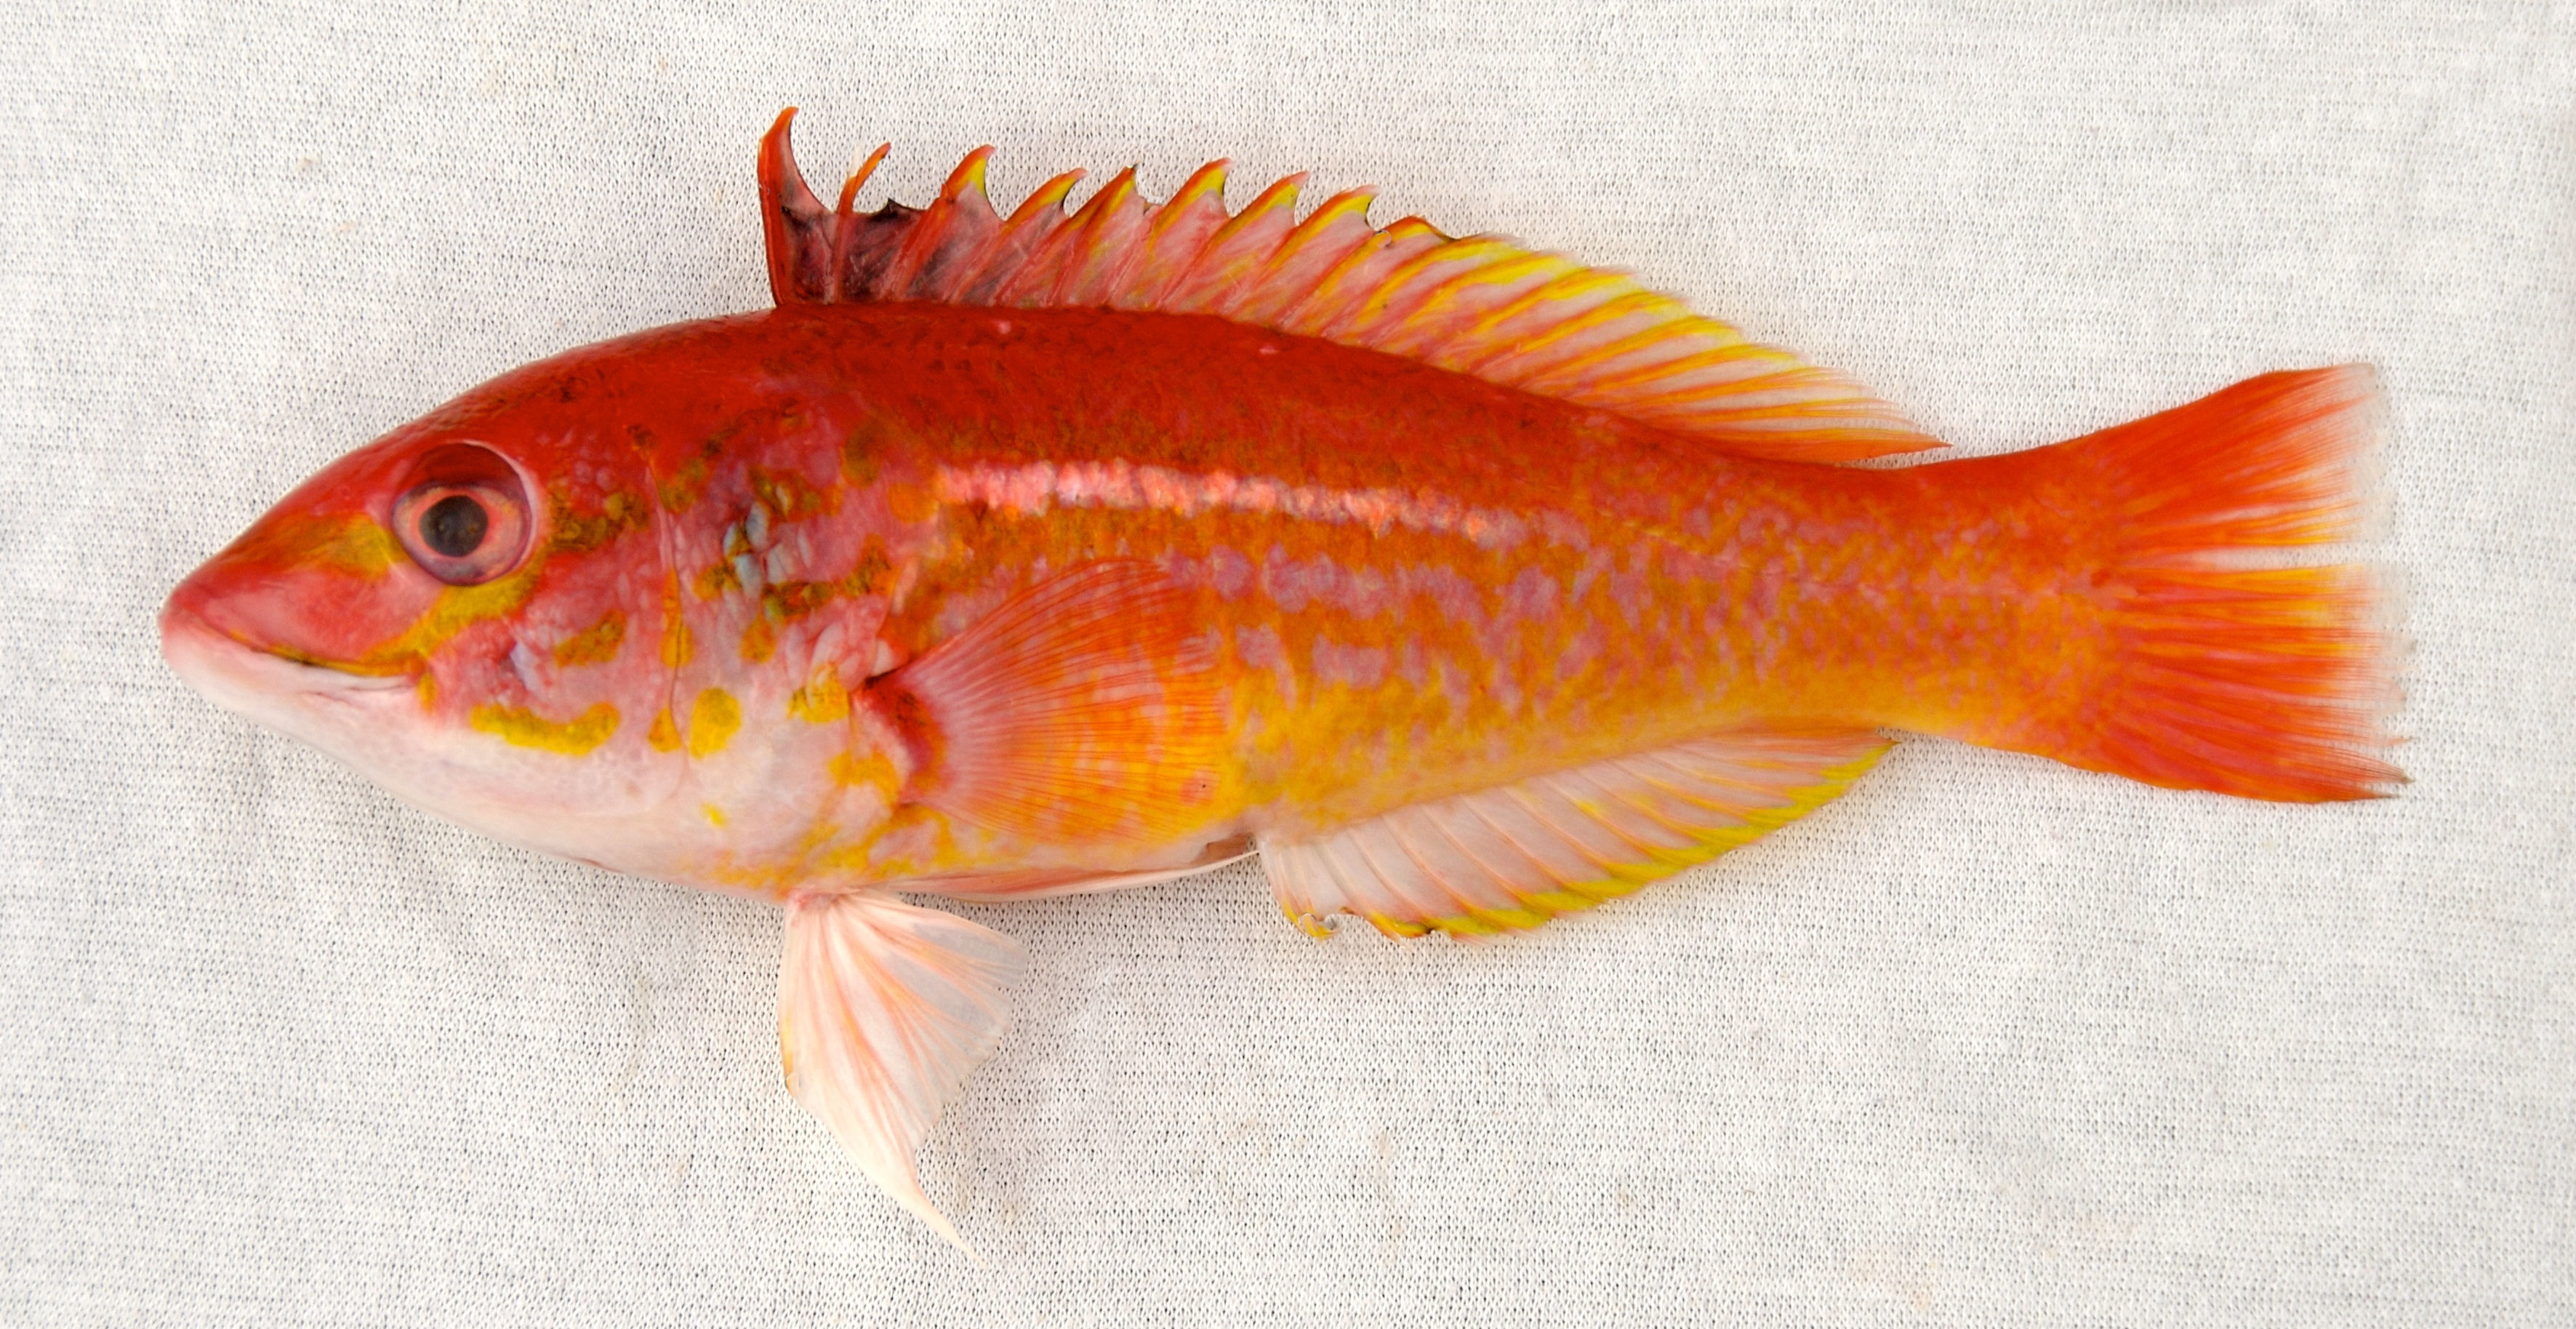 Bleeding Wrasse | Mexico – Fish, Marine Life, Birds and Terrestrial Life